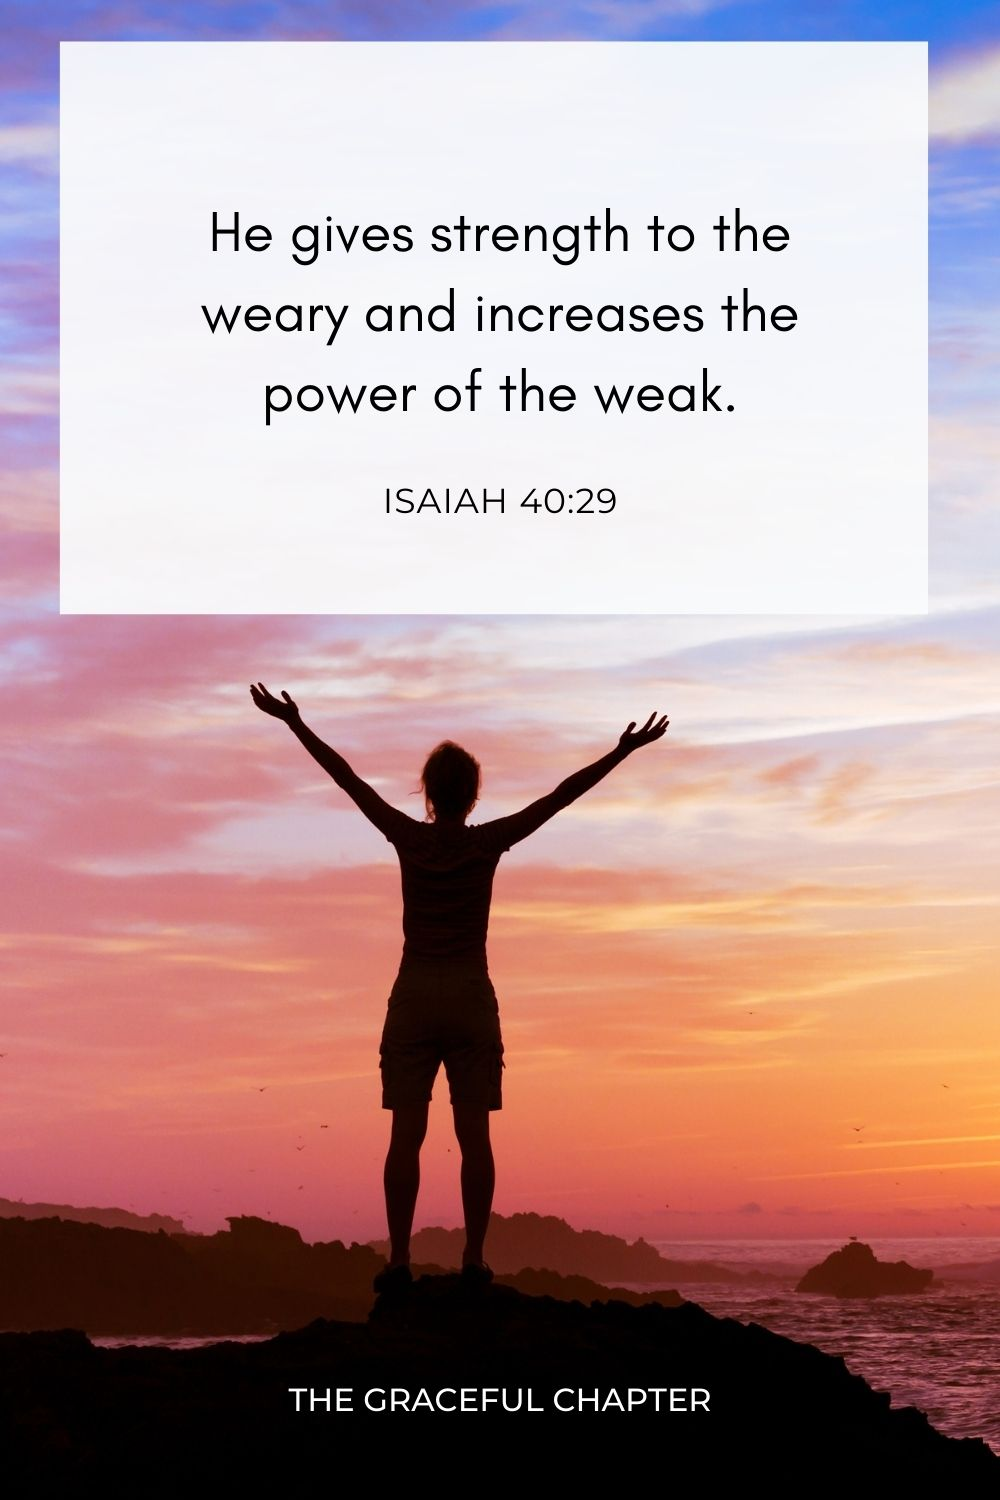 He gives strength to the weary and increases the power of the weak. Isaiah 40:29